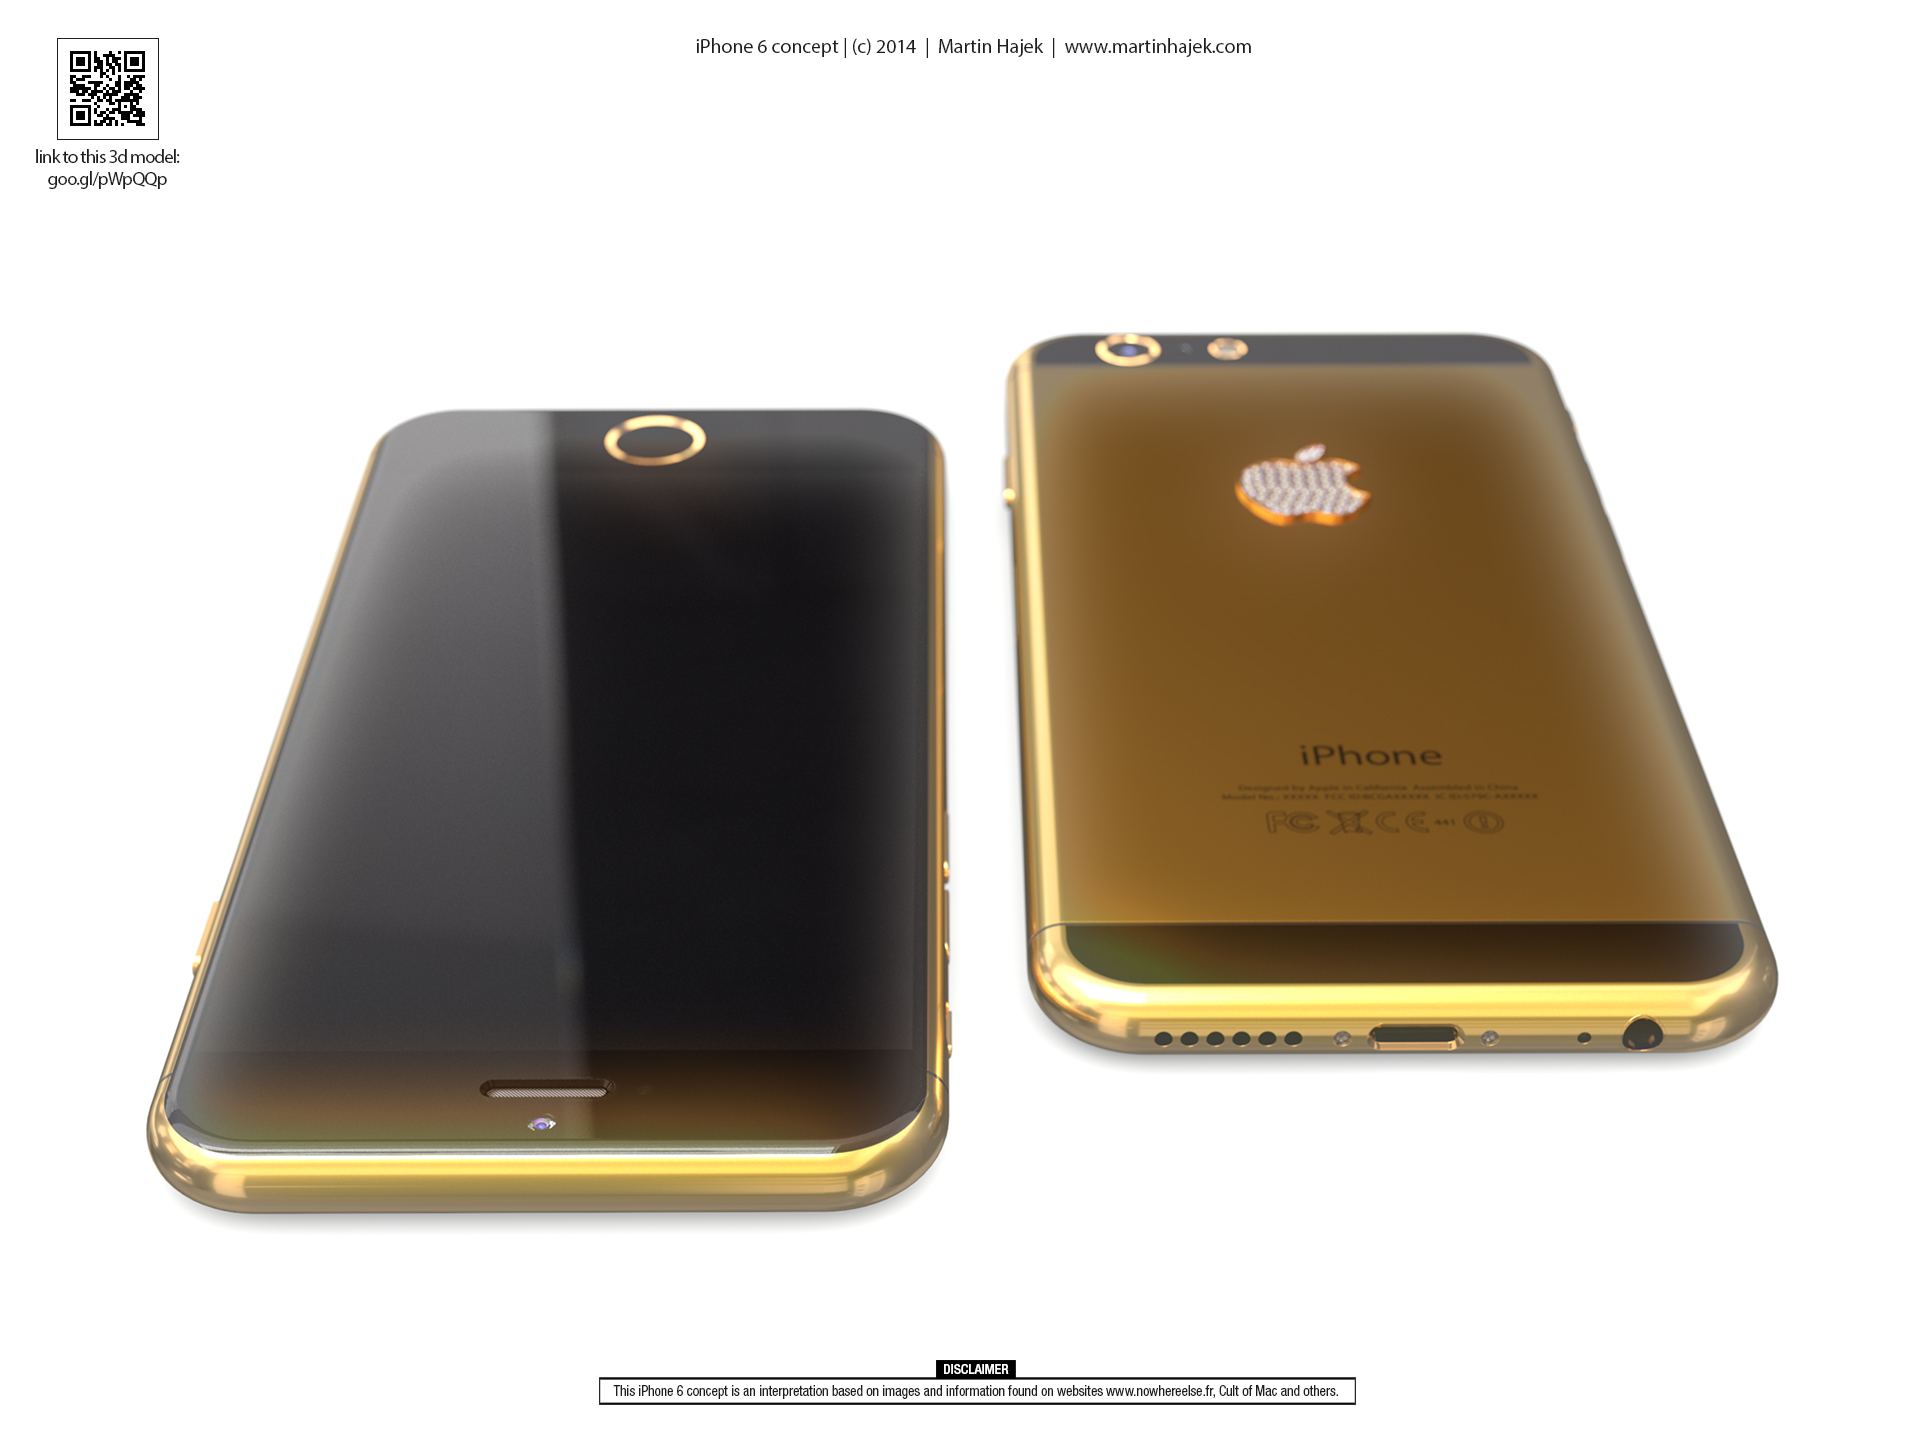 Luxury-iPhone-6-concept-design (3)